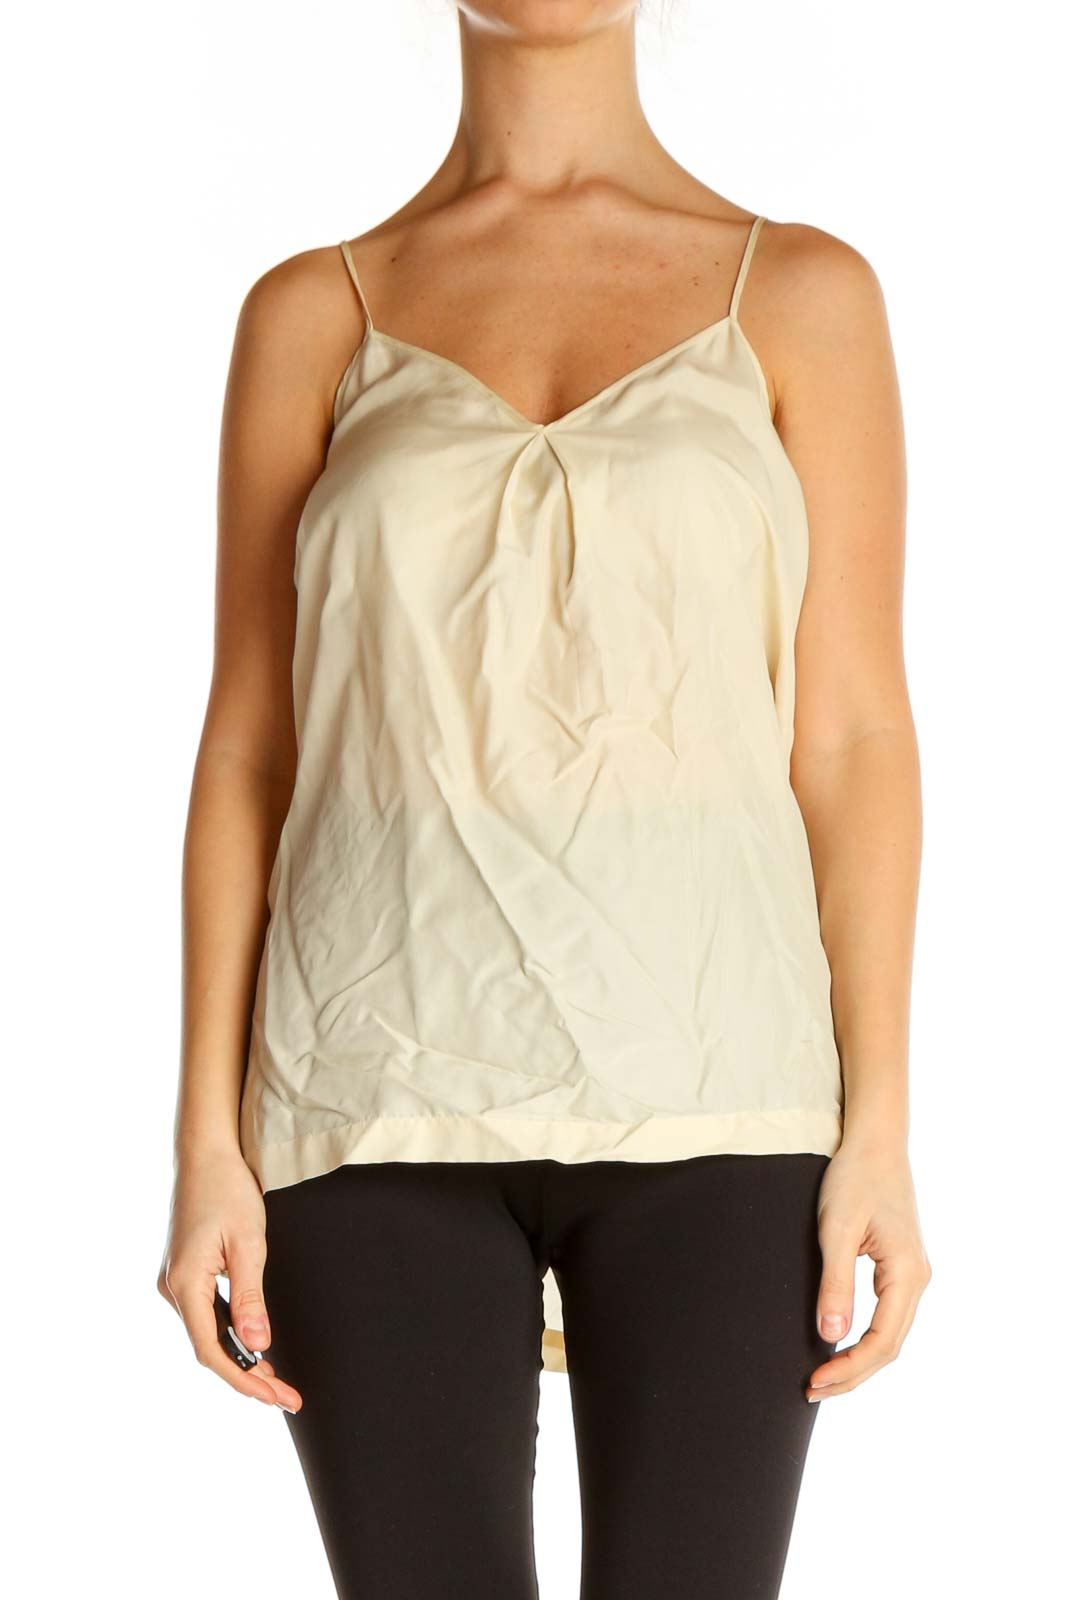 Beige Solid Chic Top Front